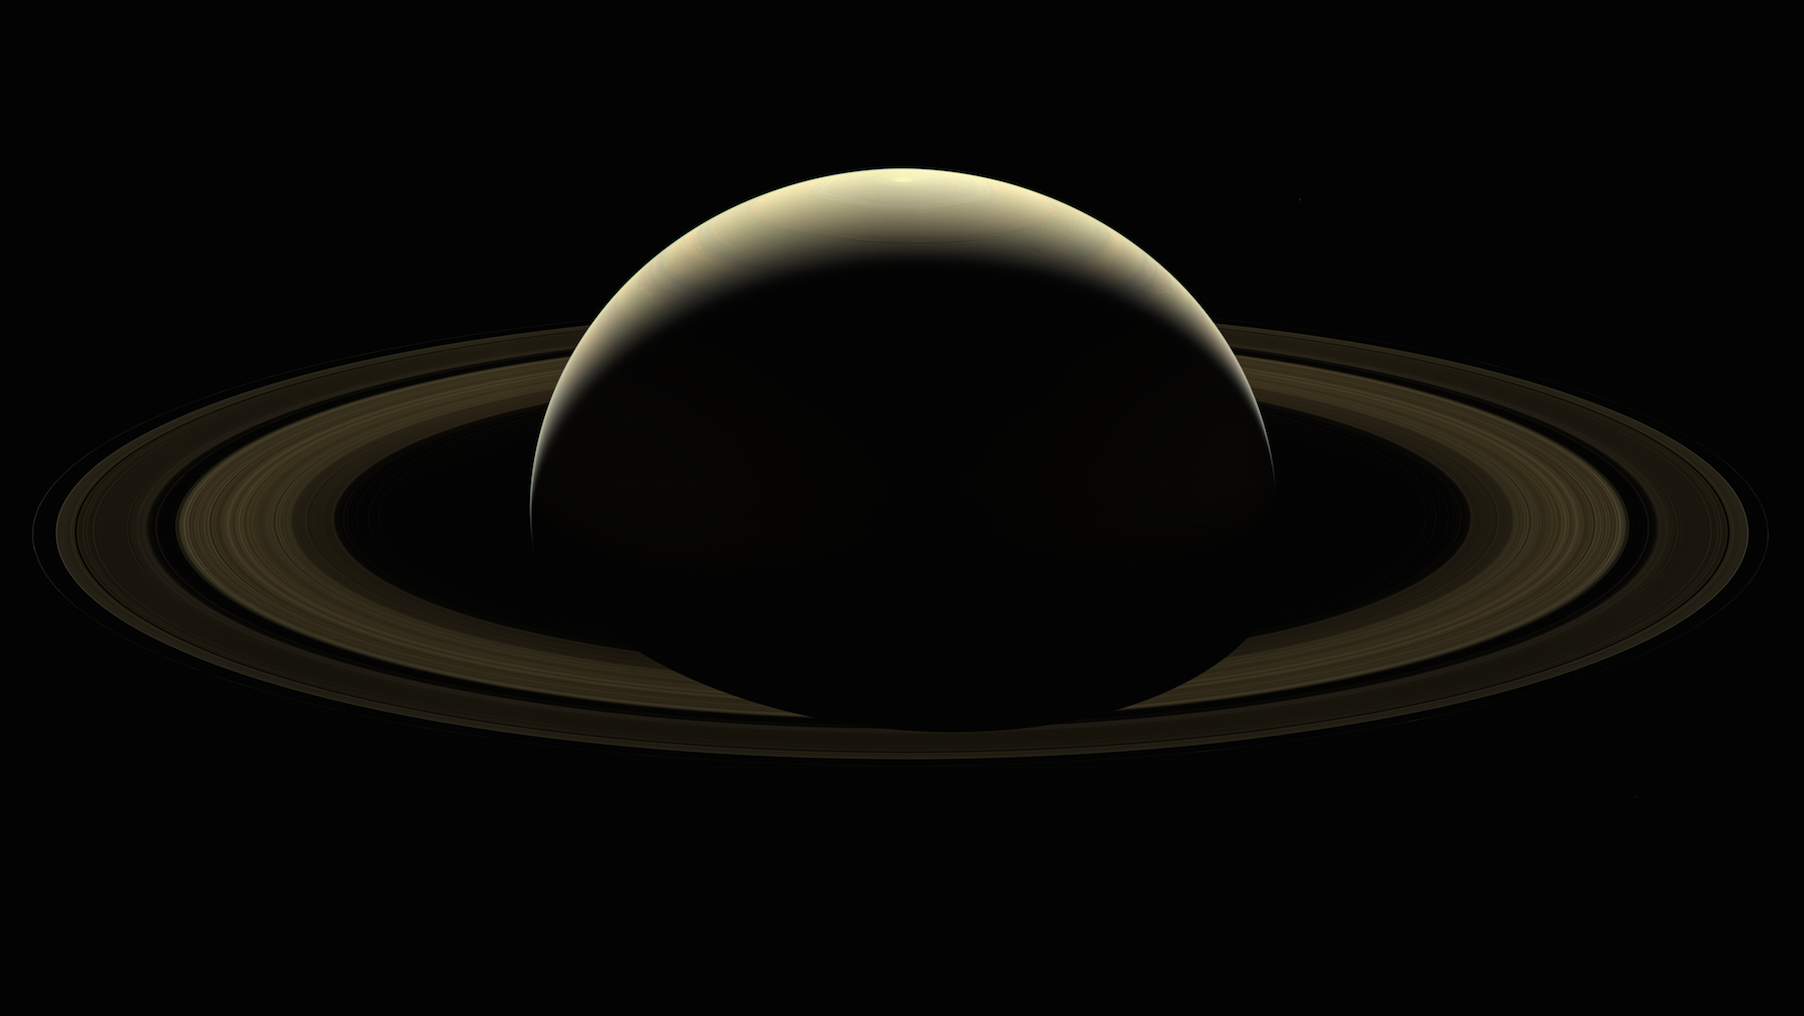 The last photograph of Saturn from NASA's Cassini mission released